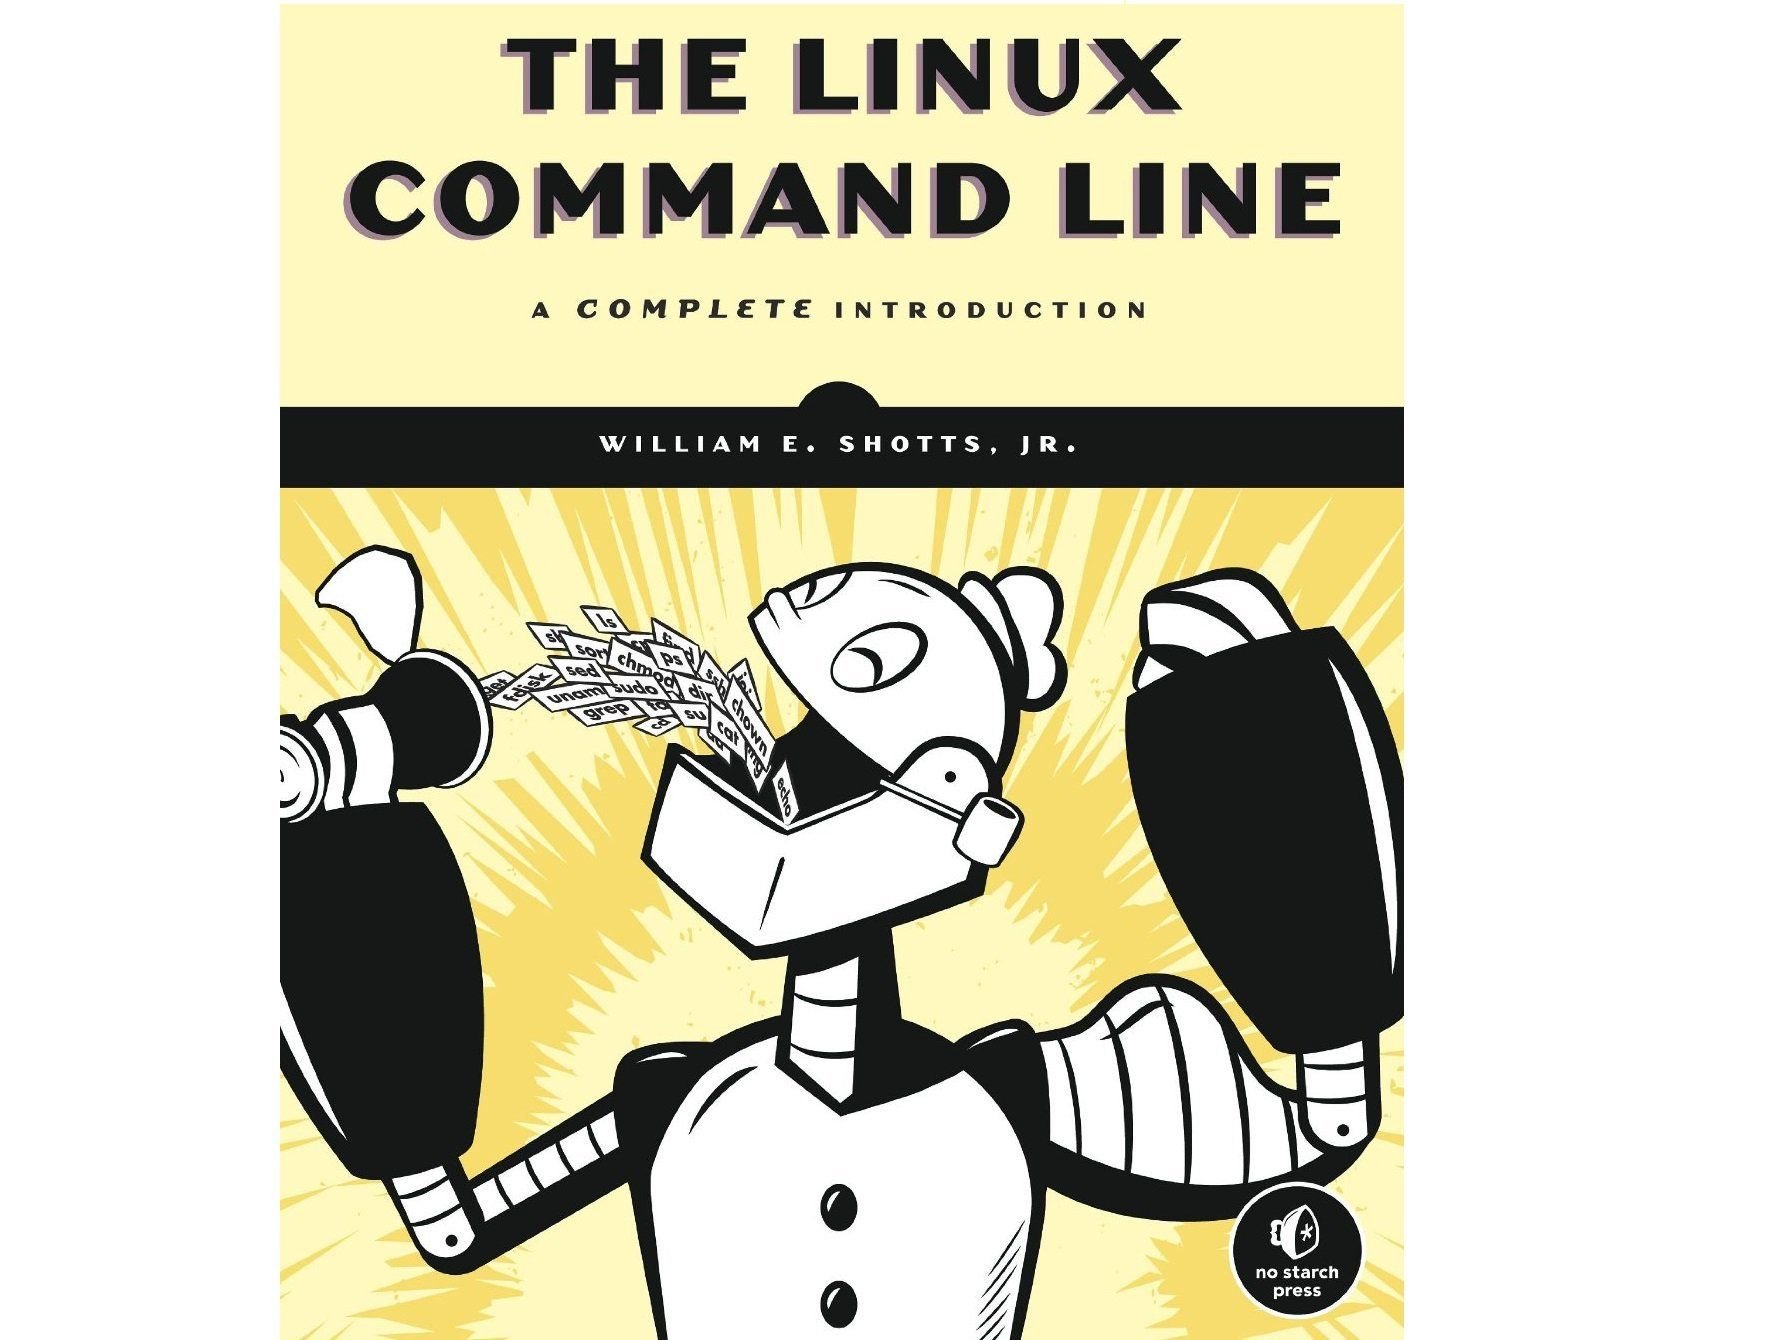 The Linux Command Line eBook Free Download Linux, Ebook